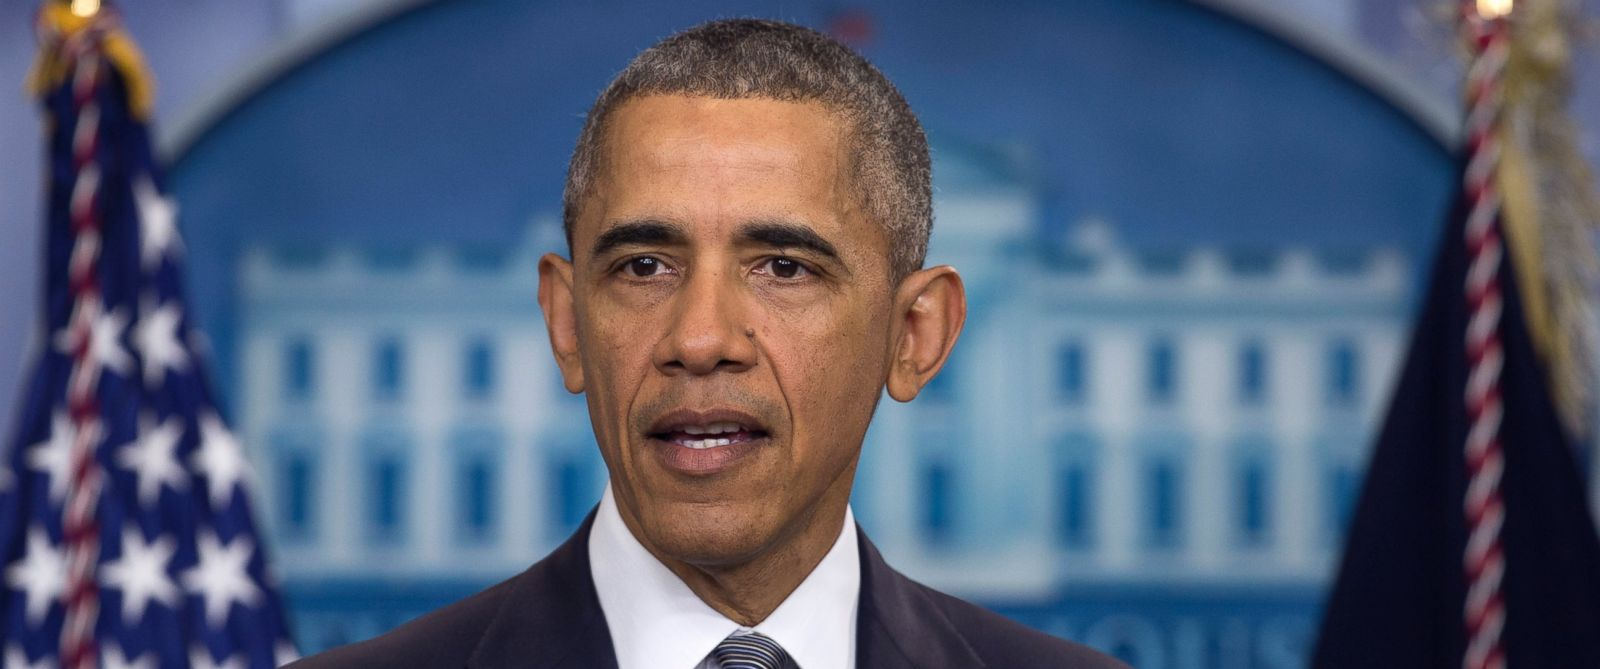 Read President Obama's Open Letter to America's Law Enforcement Community